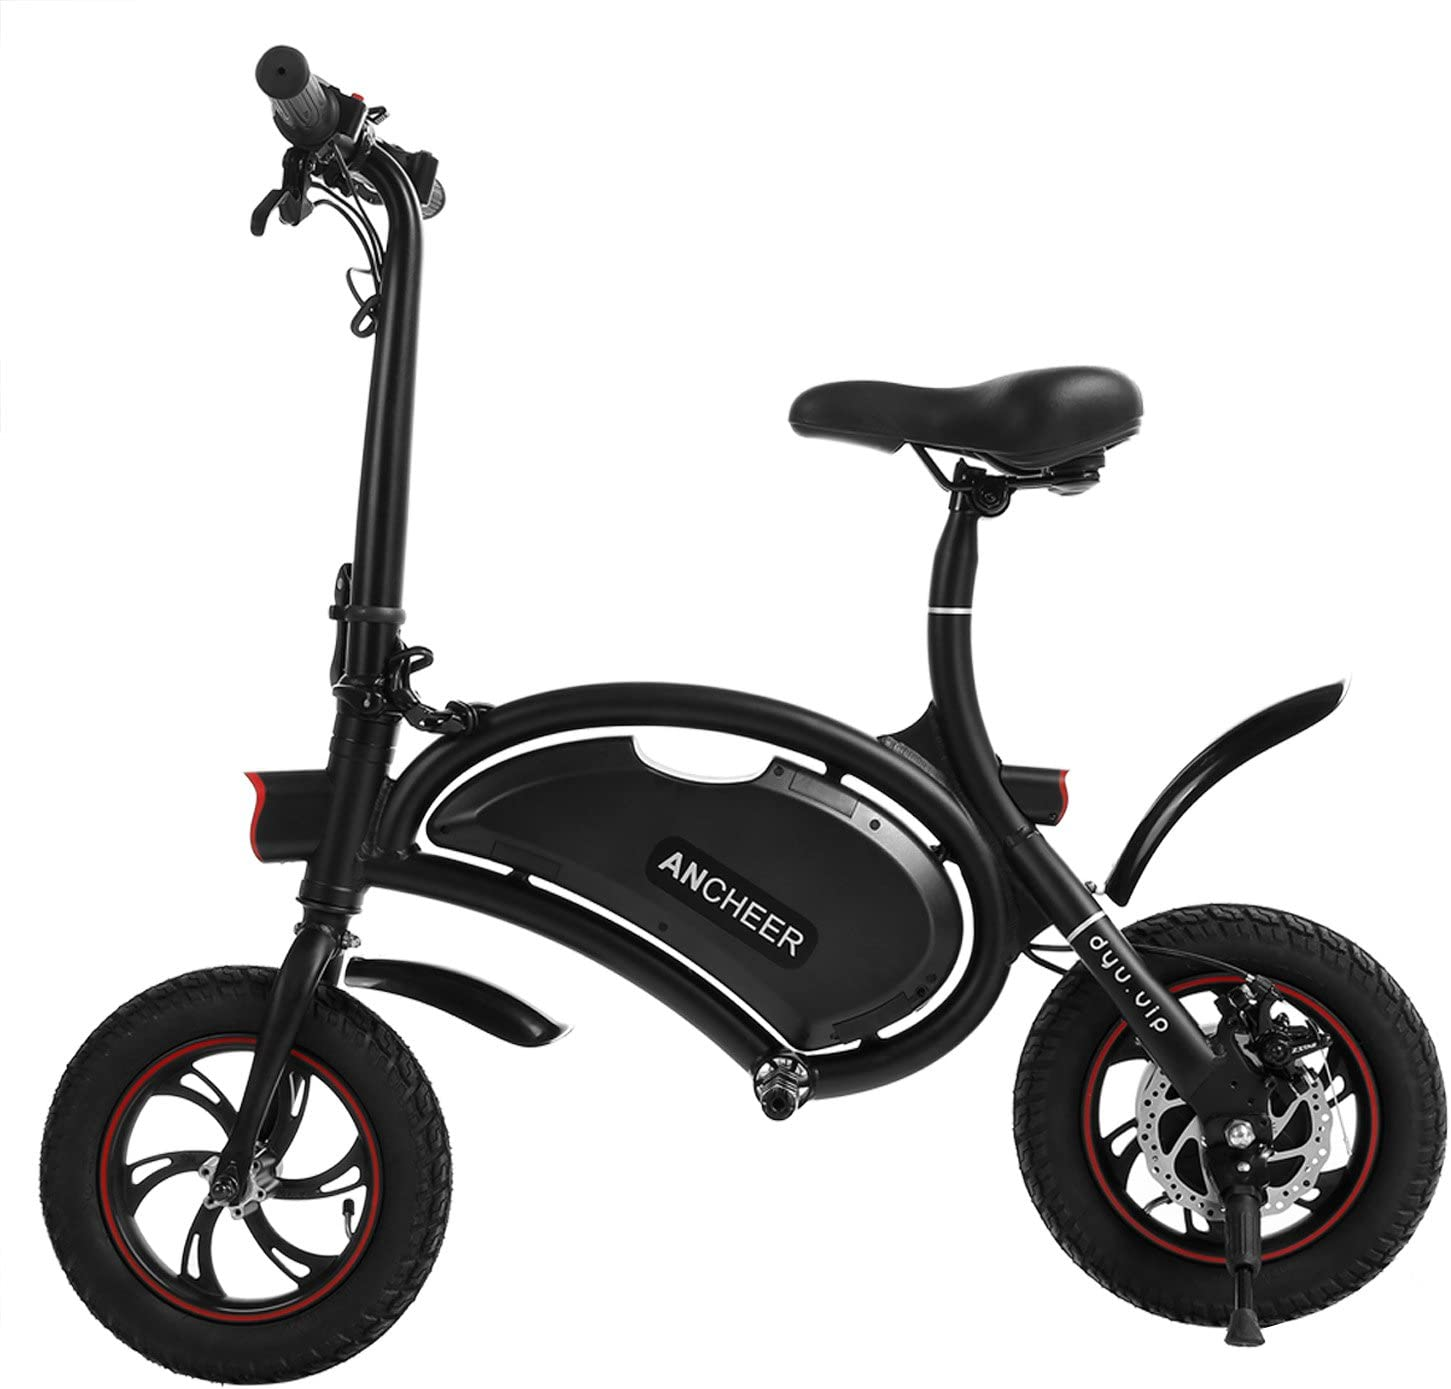 The Best Folding Electric Bikes - The Ultimate Guide